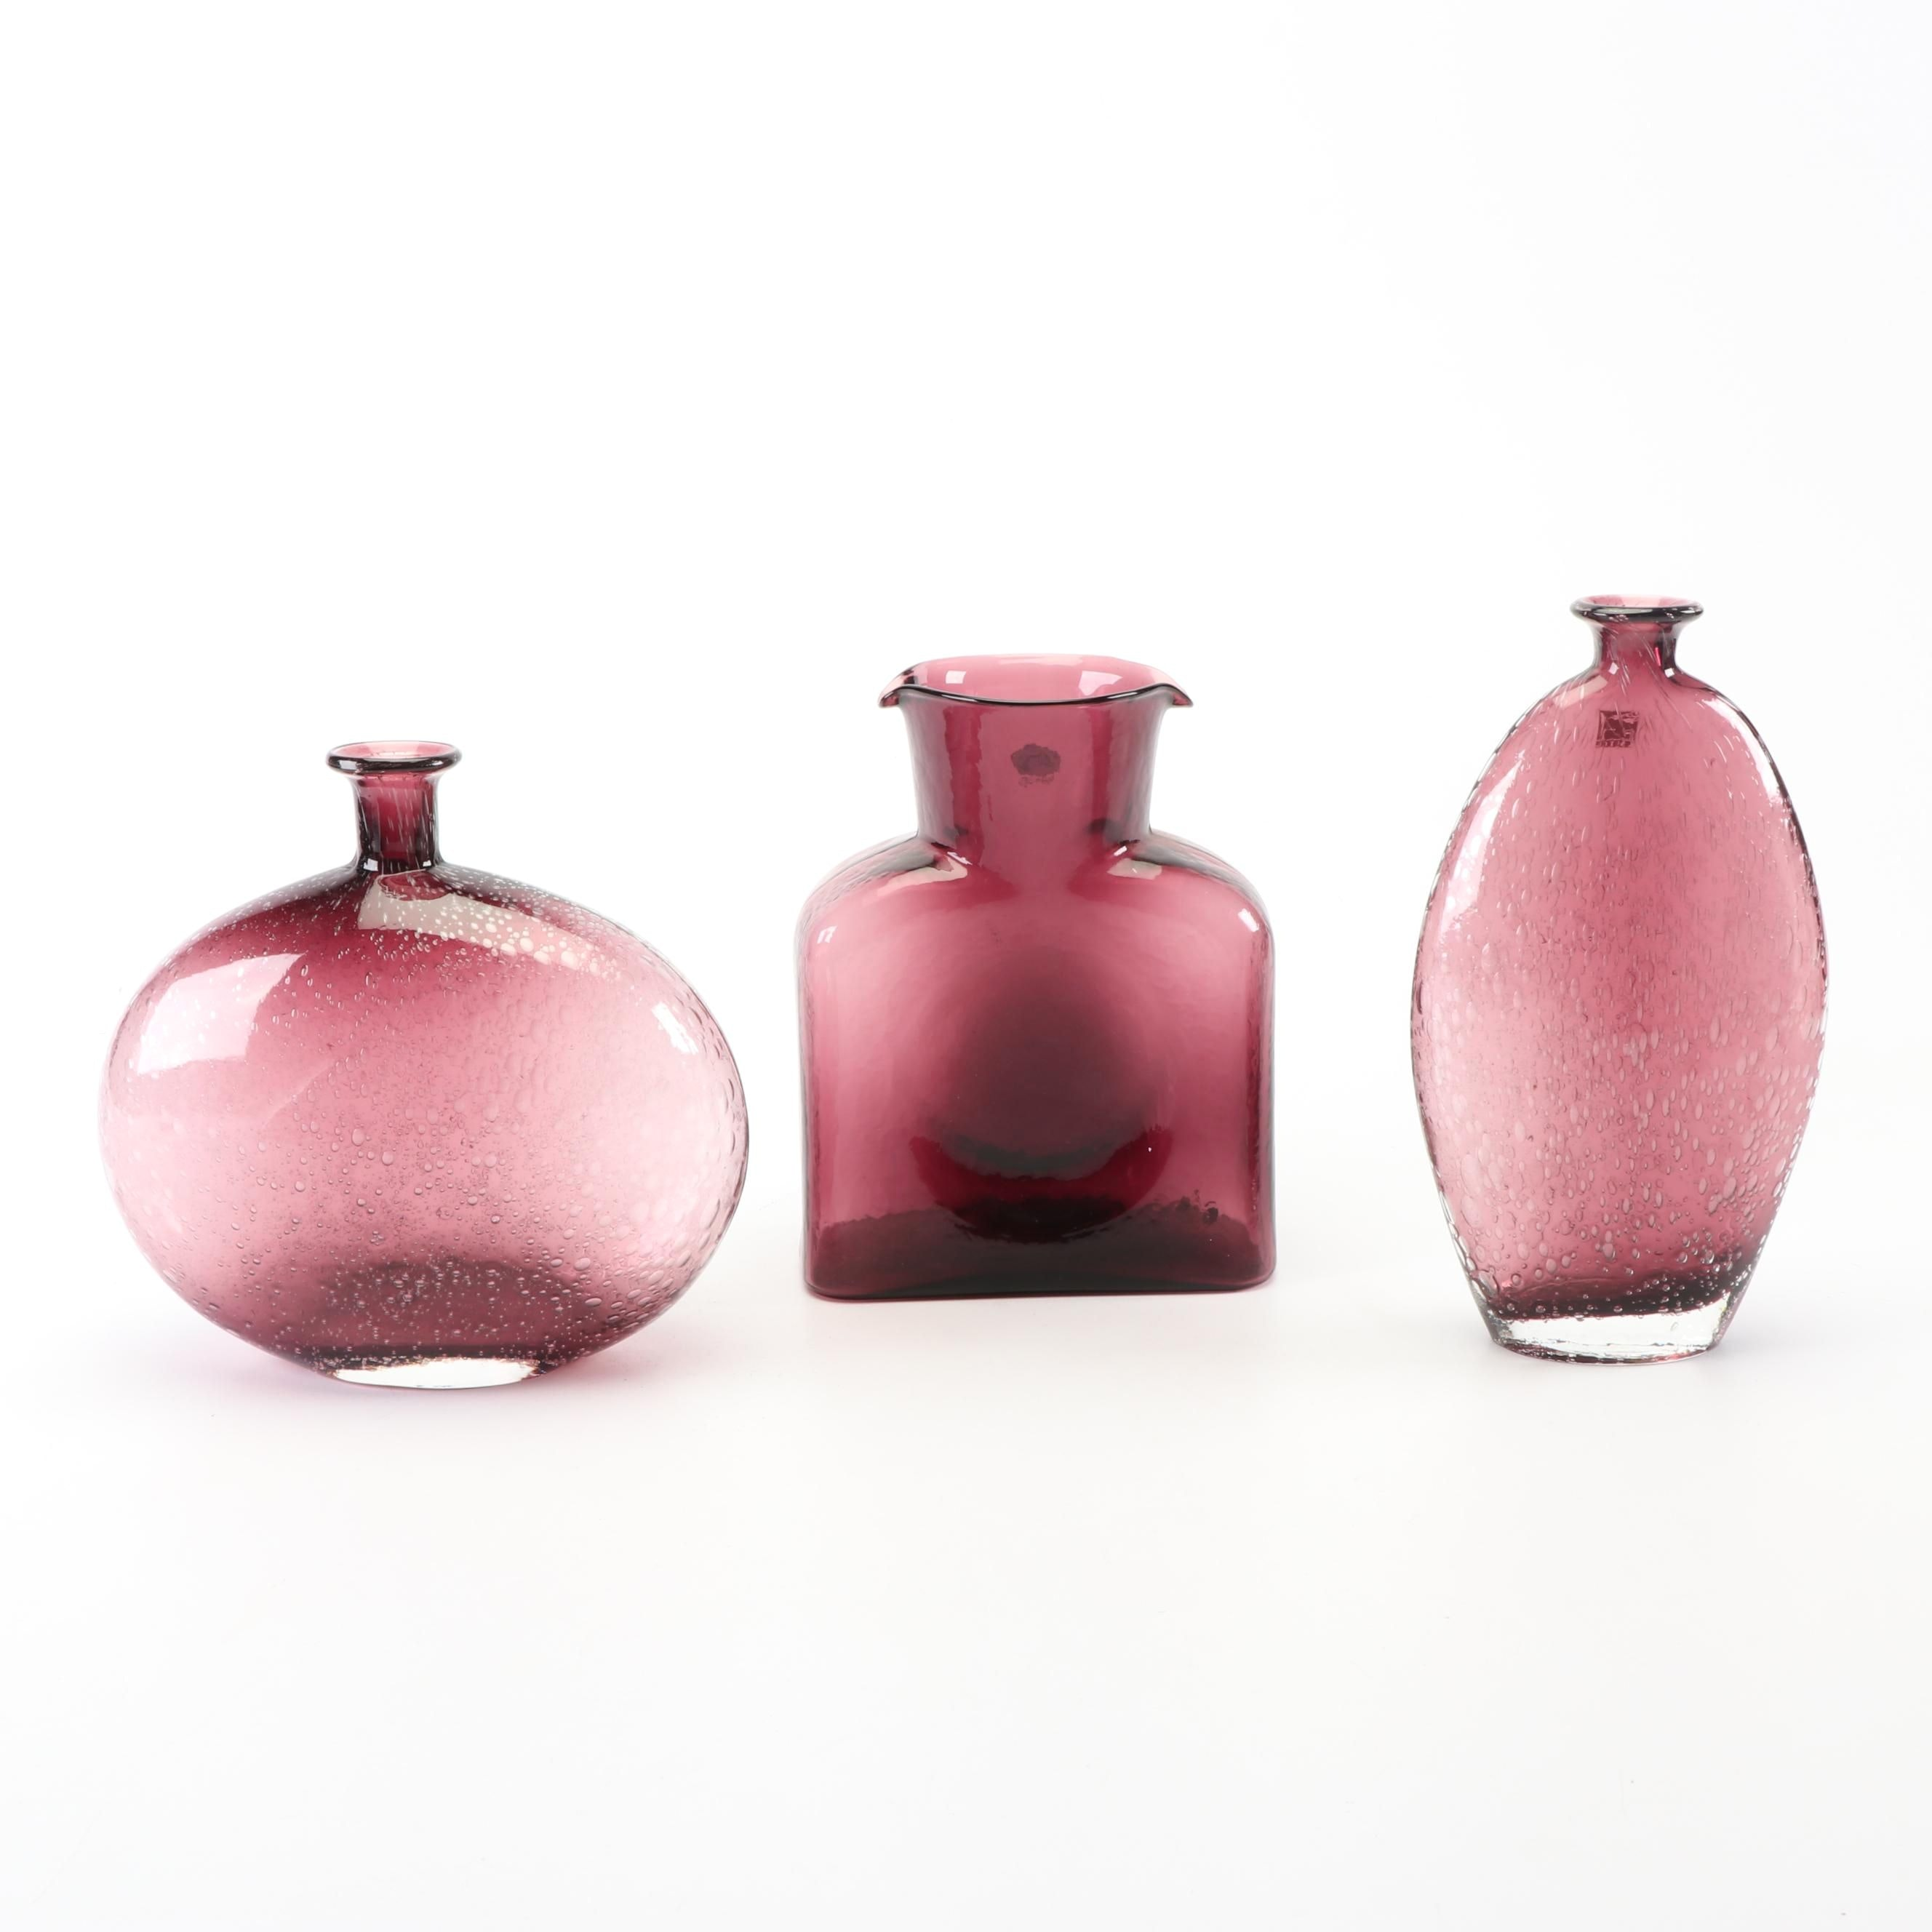 Blenko Amethyst Art Glass Pitcher with Amici Vases